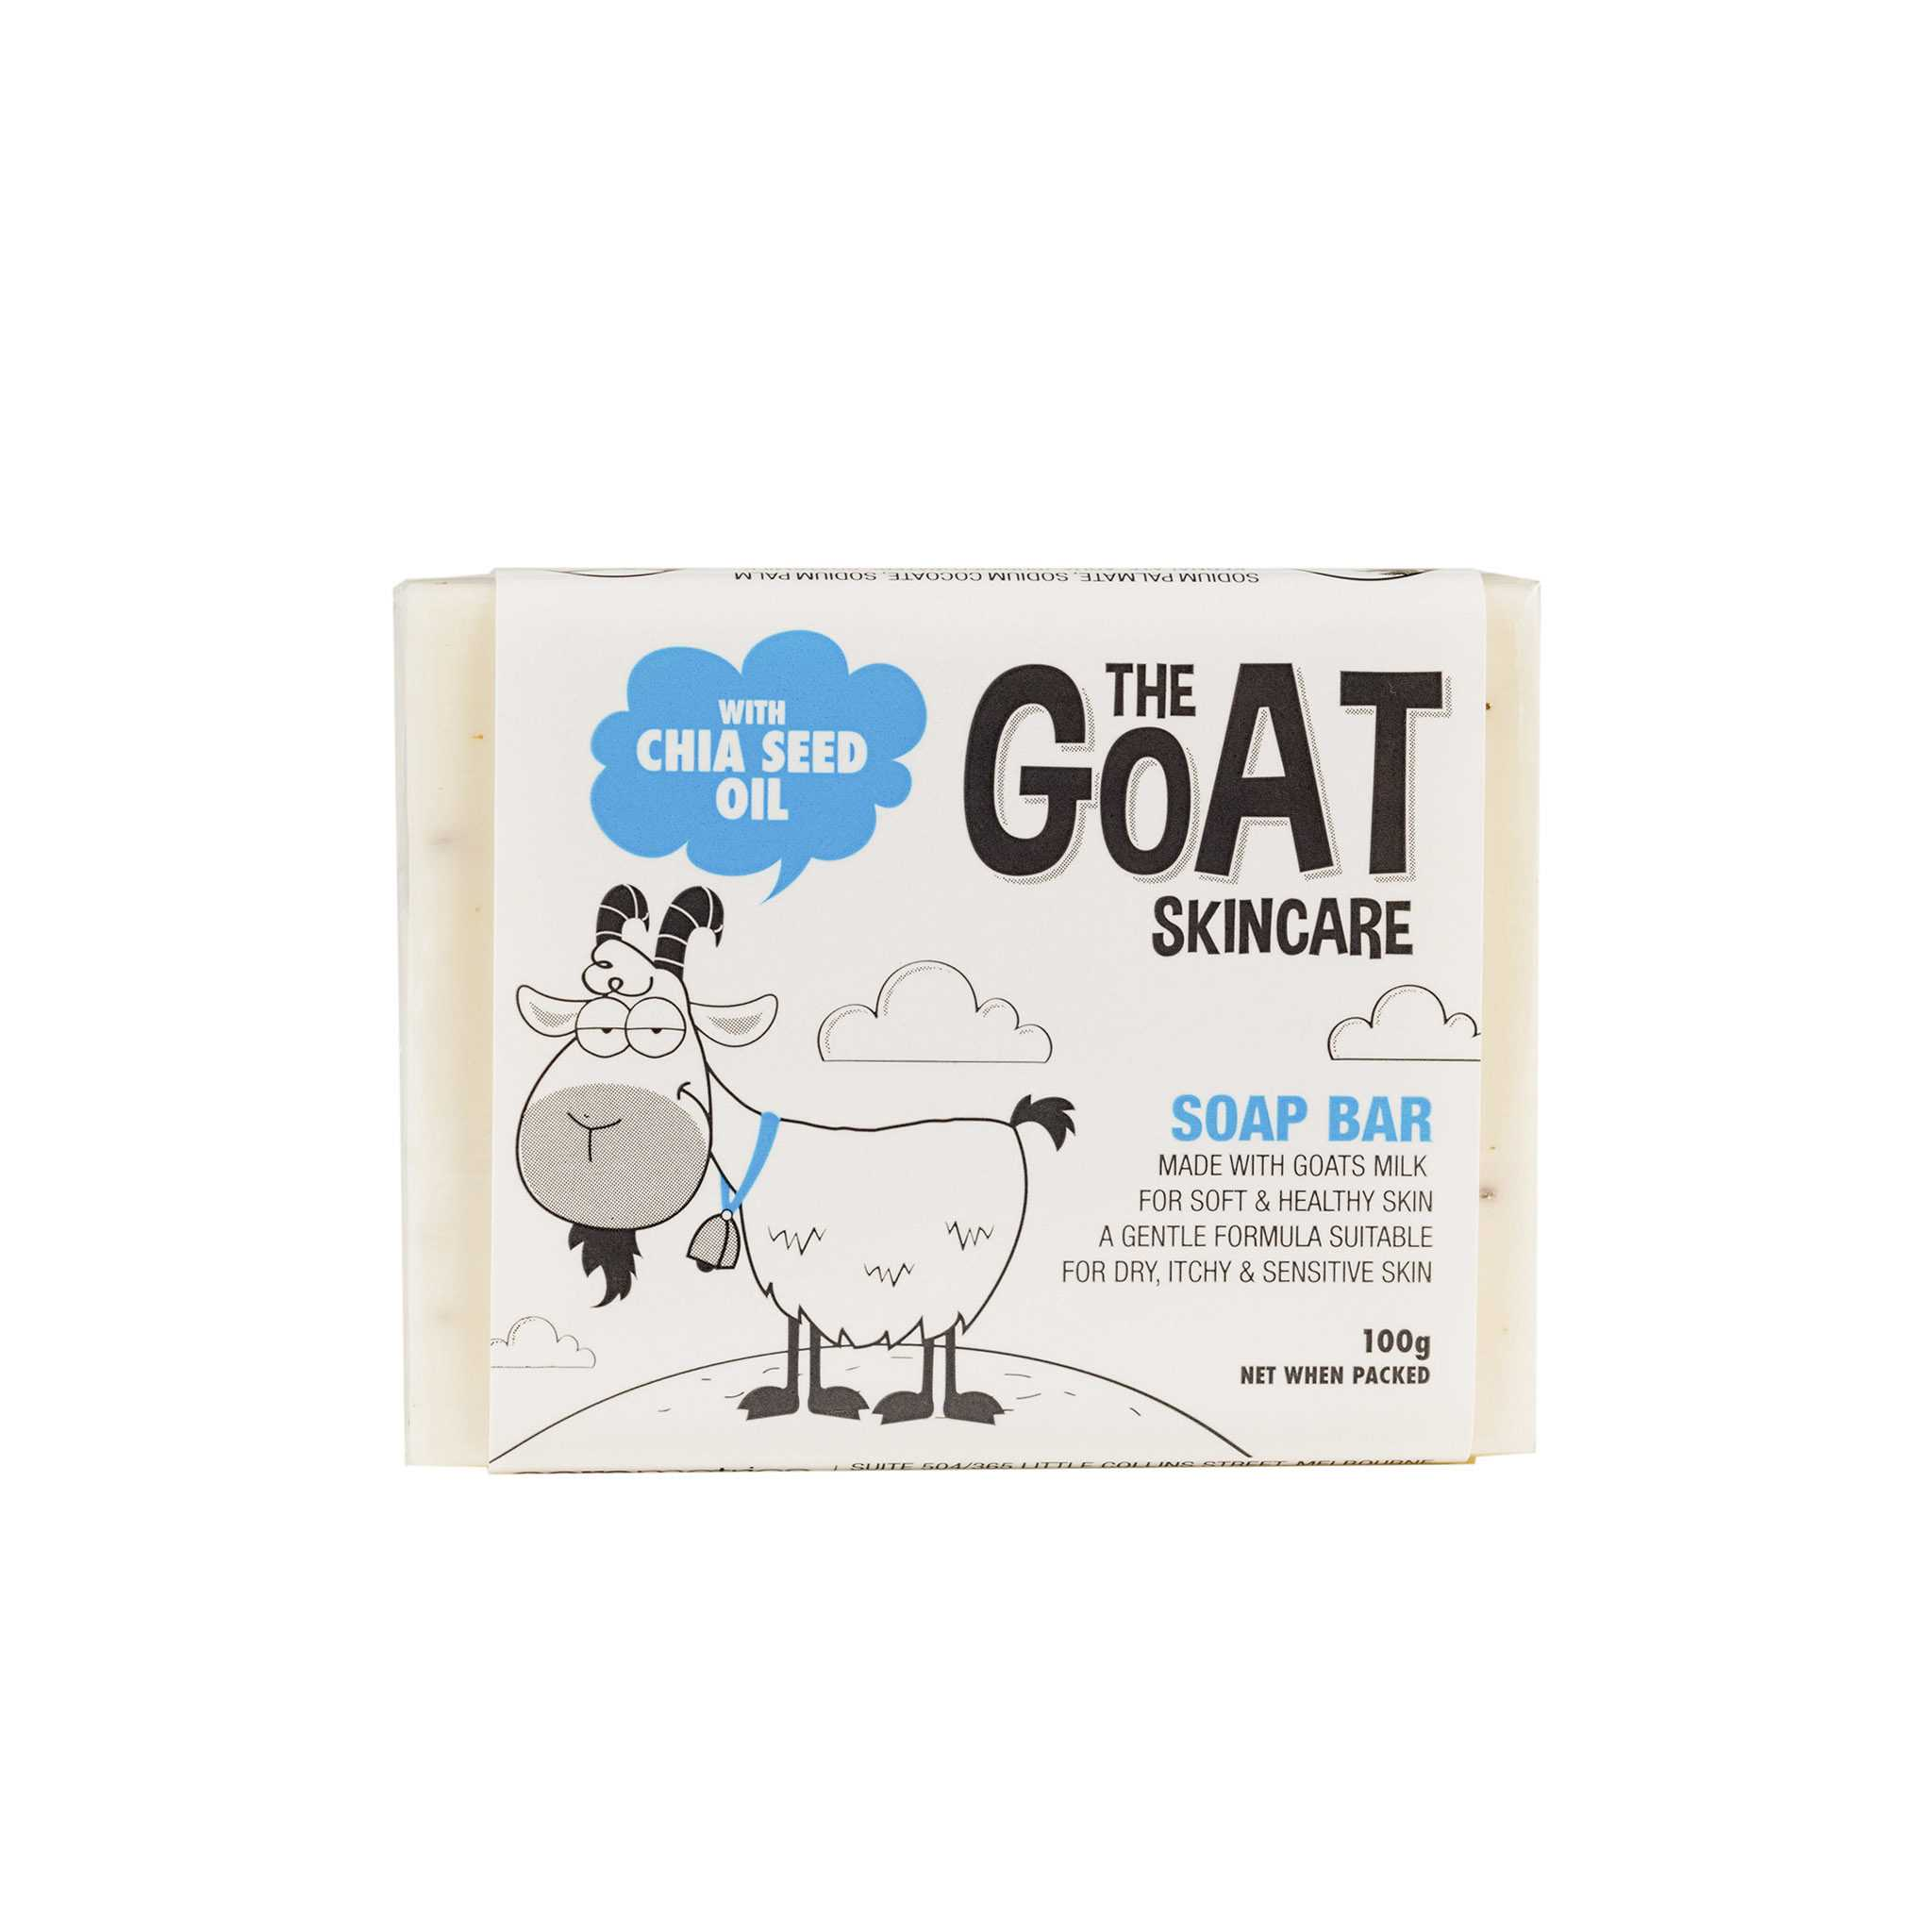 The Goat Skincare Soap Bar 羊奶奇亞籽香皂